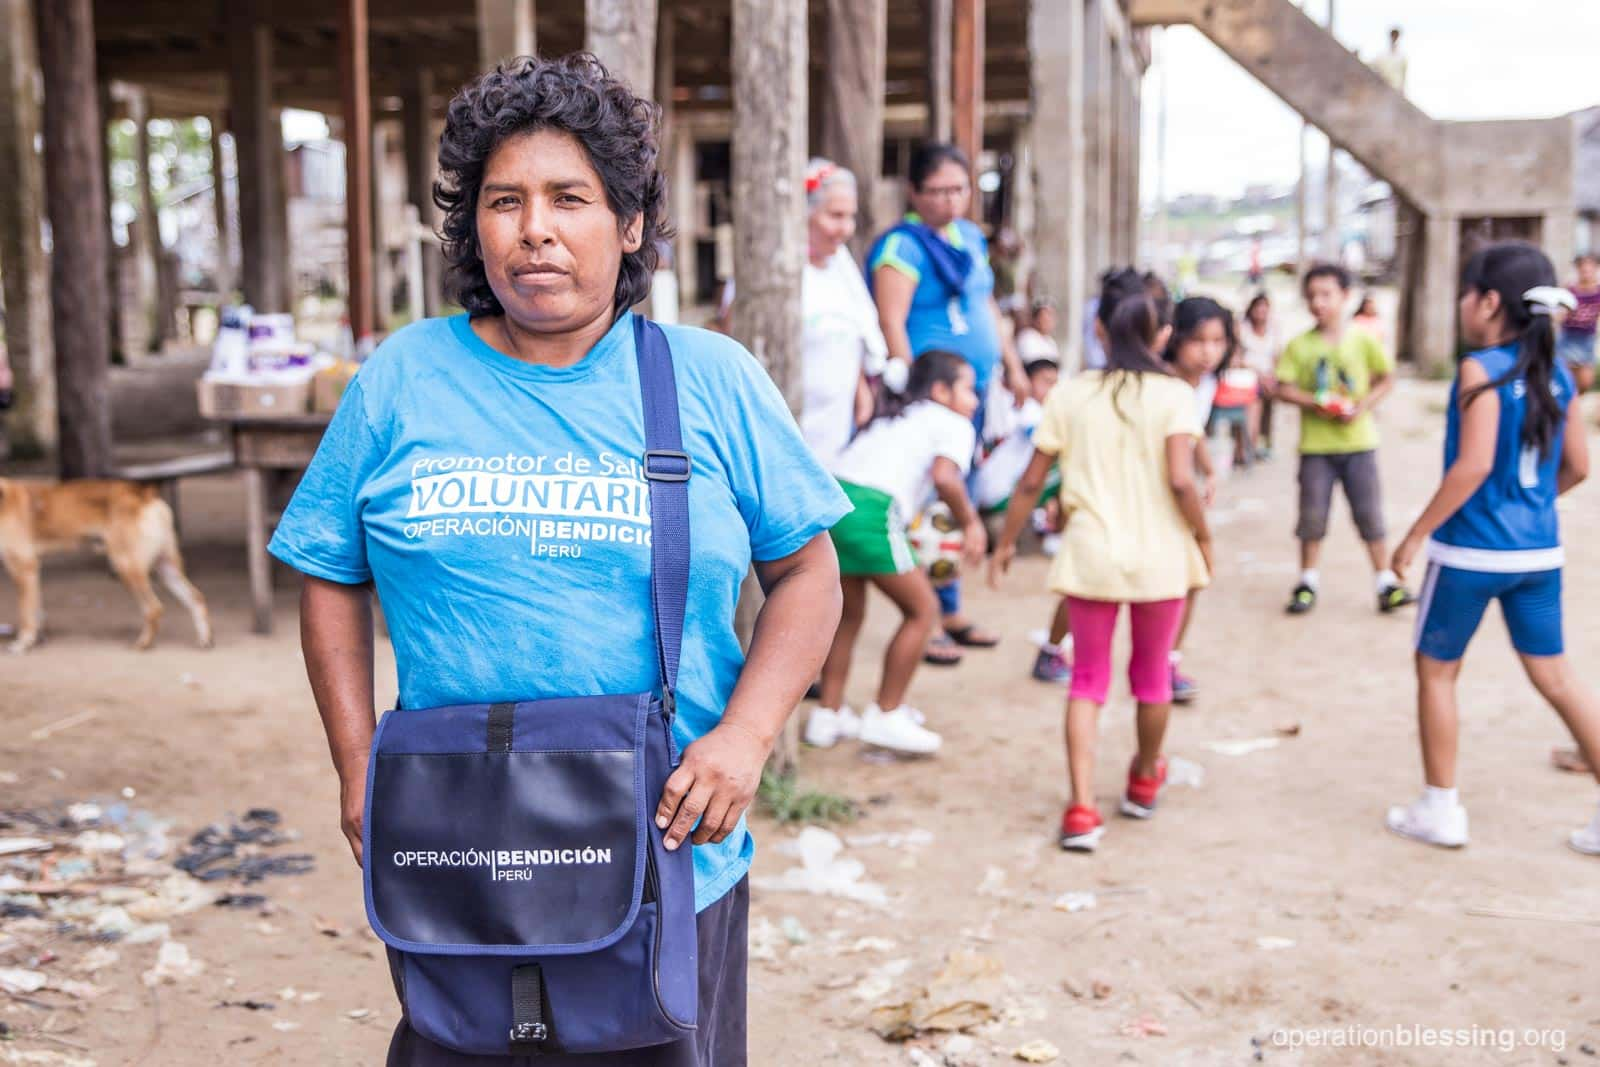 Sonia is always ready to go and serve anyone in her Peruvian community in need of the basic medical and life-saving skills she learned in her Community Health Workers program.